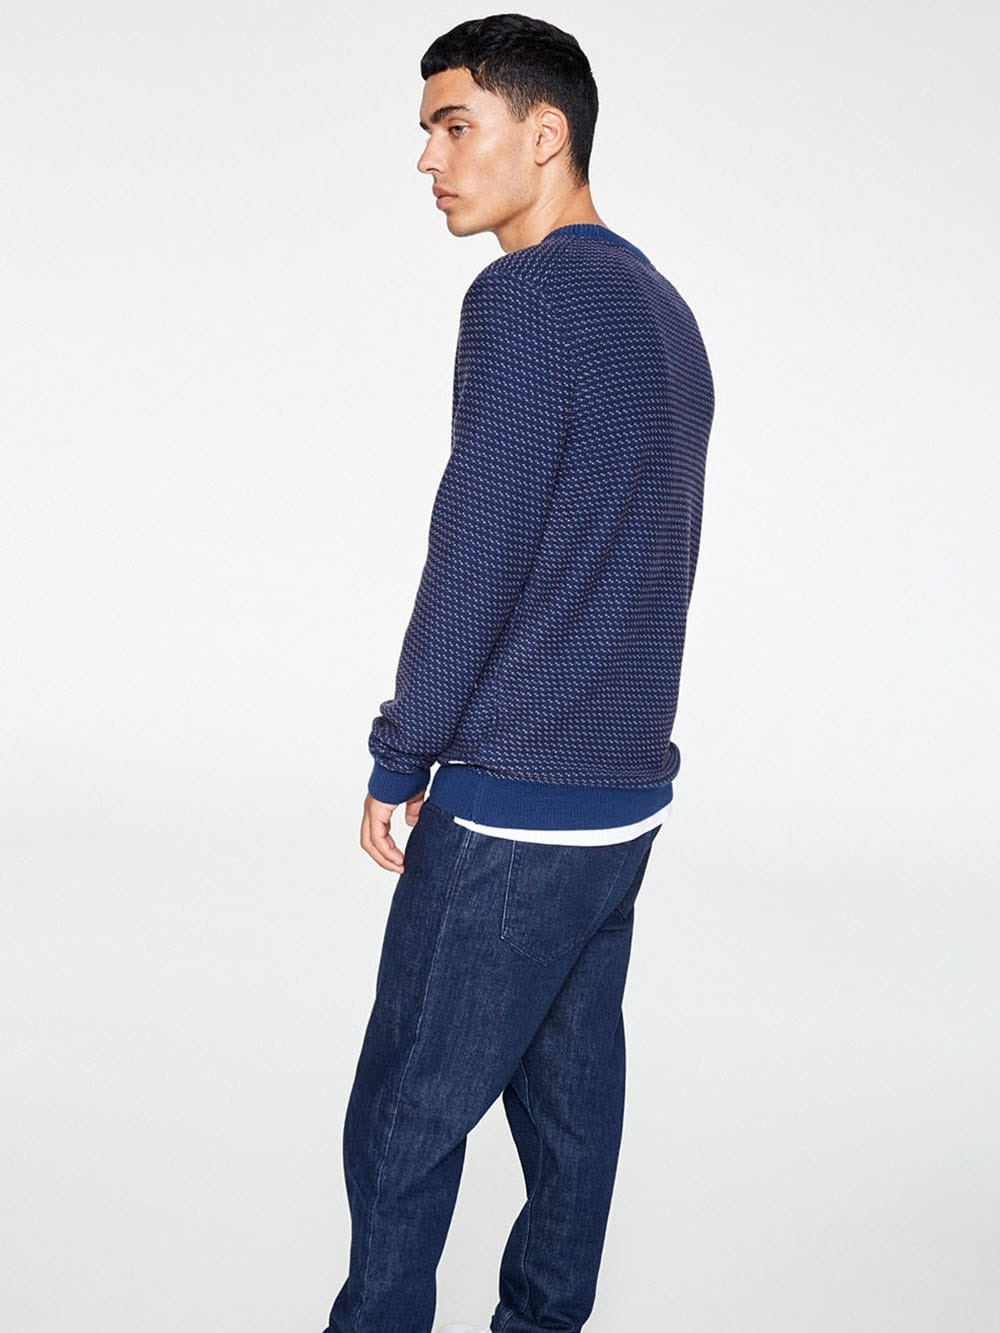 Blue jersey with cuffs made of organic cotton-Taavi